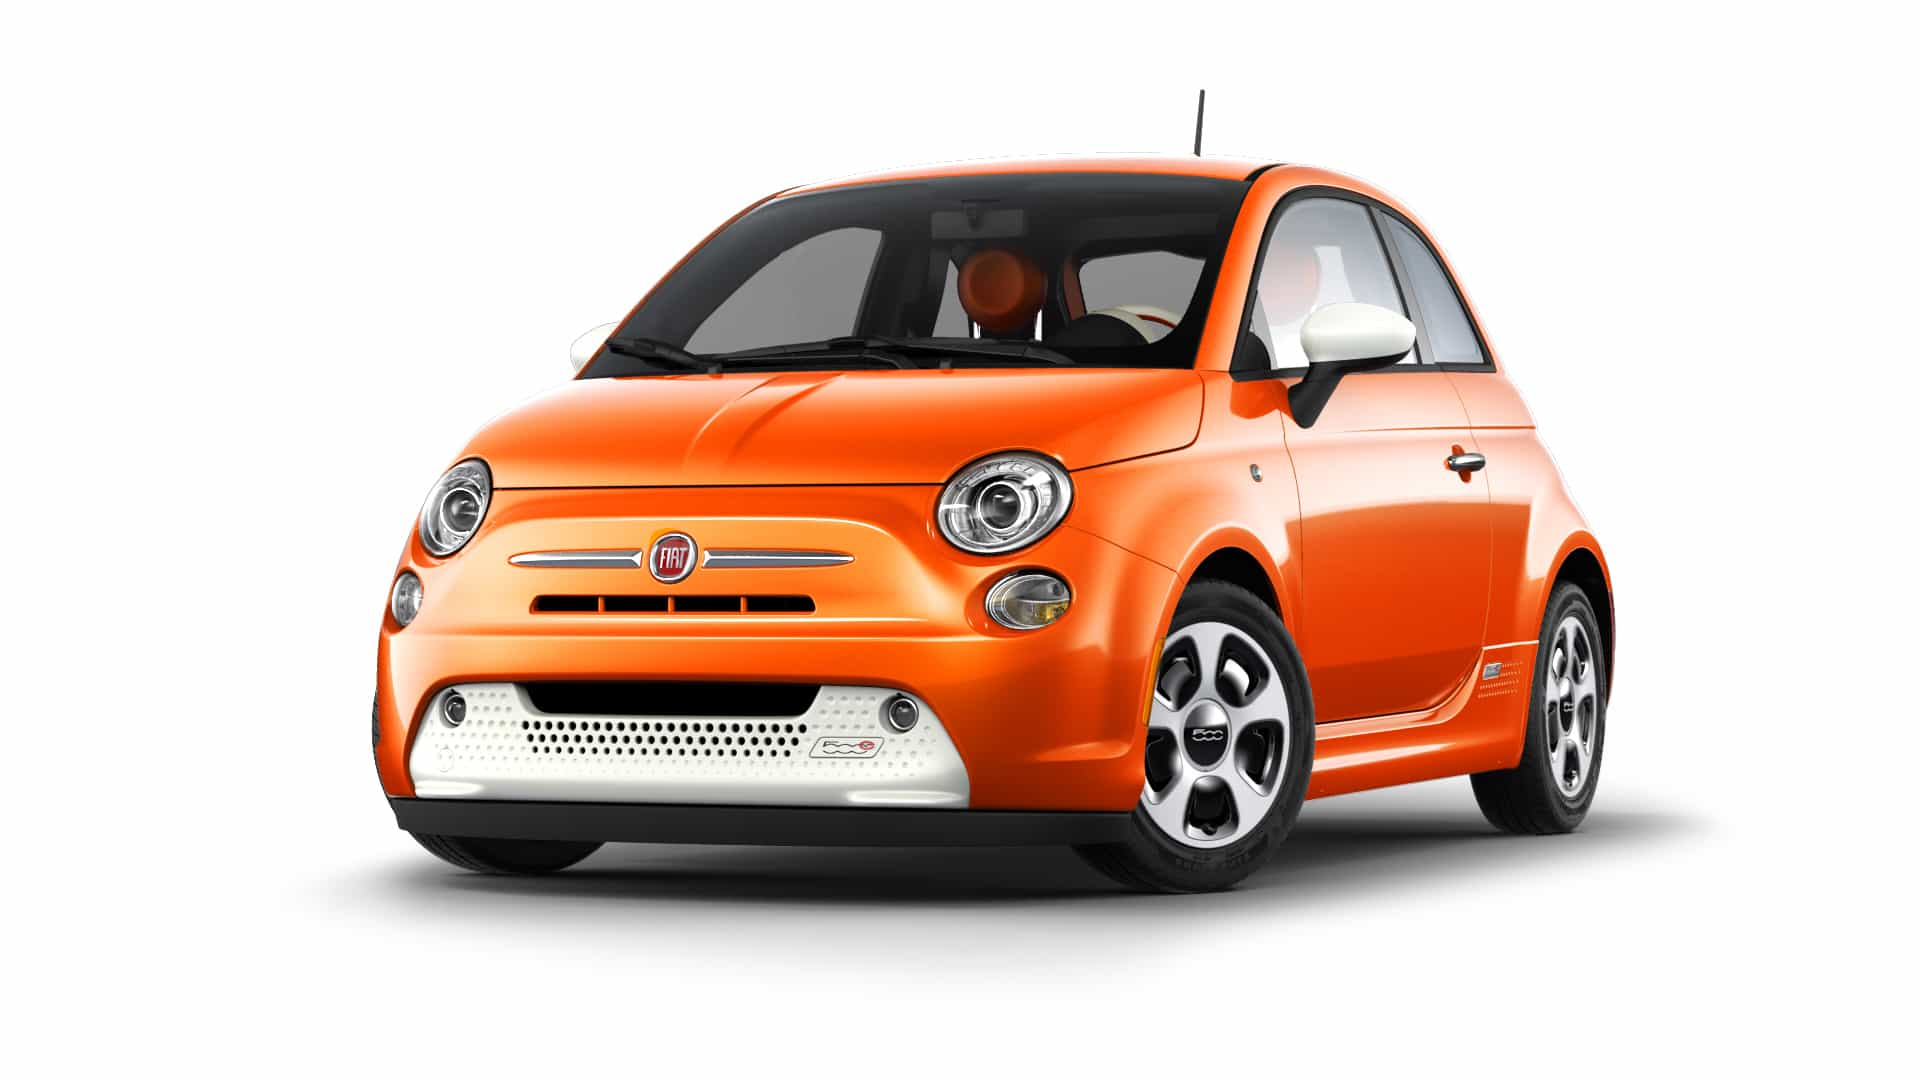 Fiat E Software Update For Limpin Mode Auto Connected Car News - Fiat autos